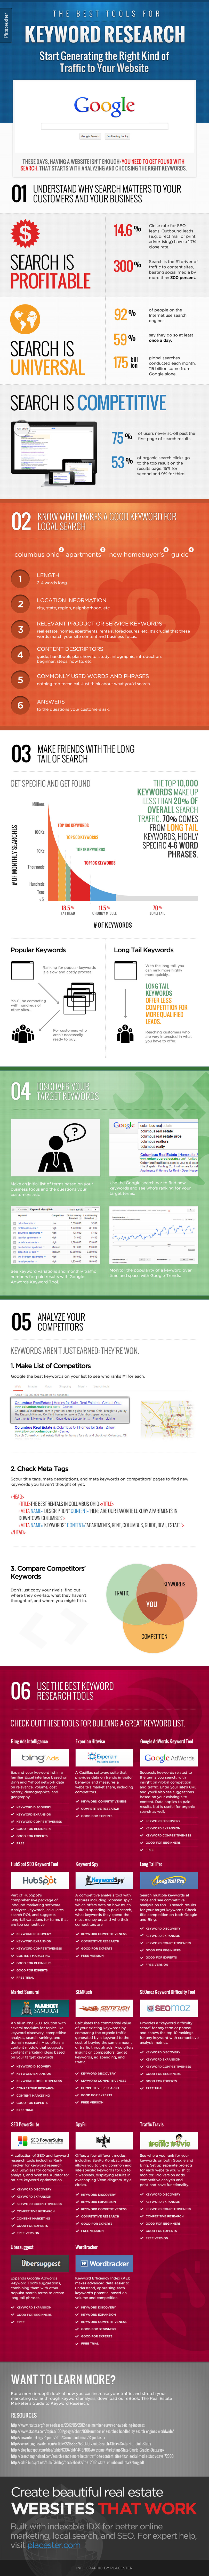 effective keyword planning infographic from placester